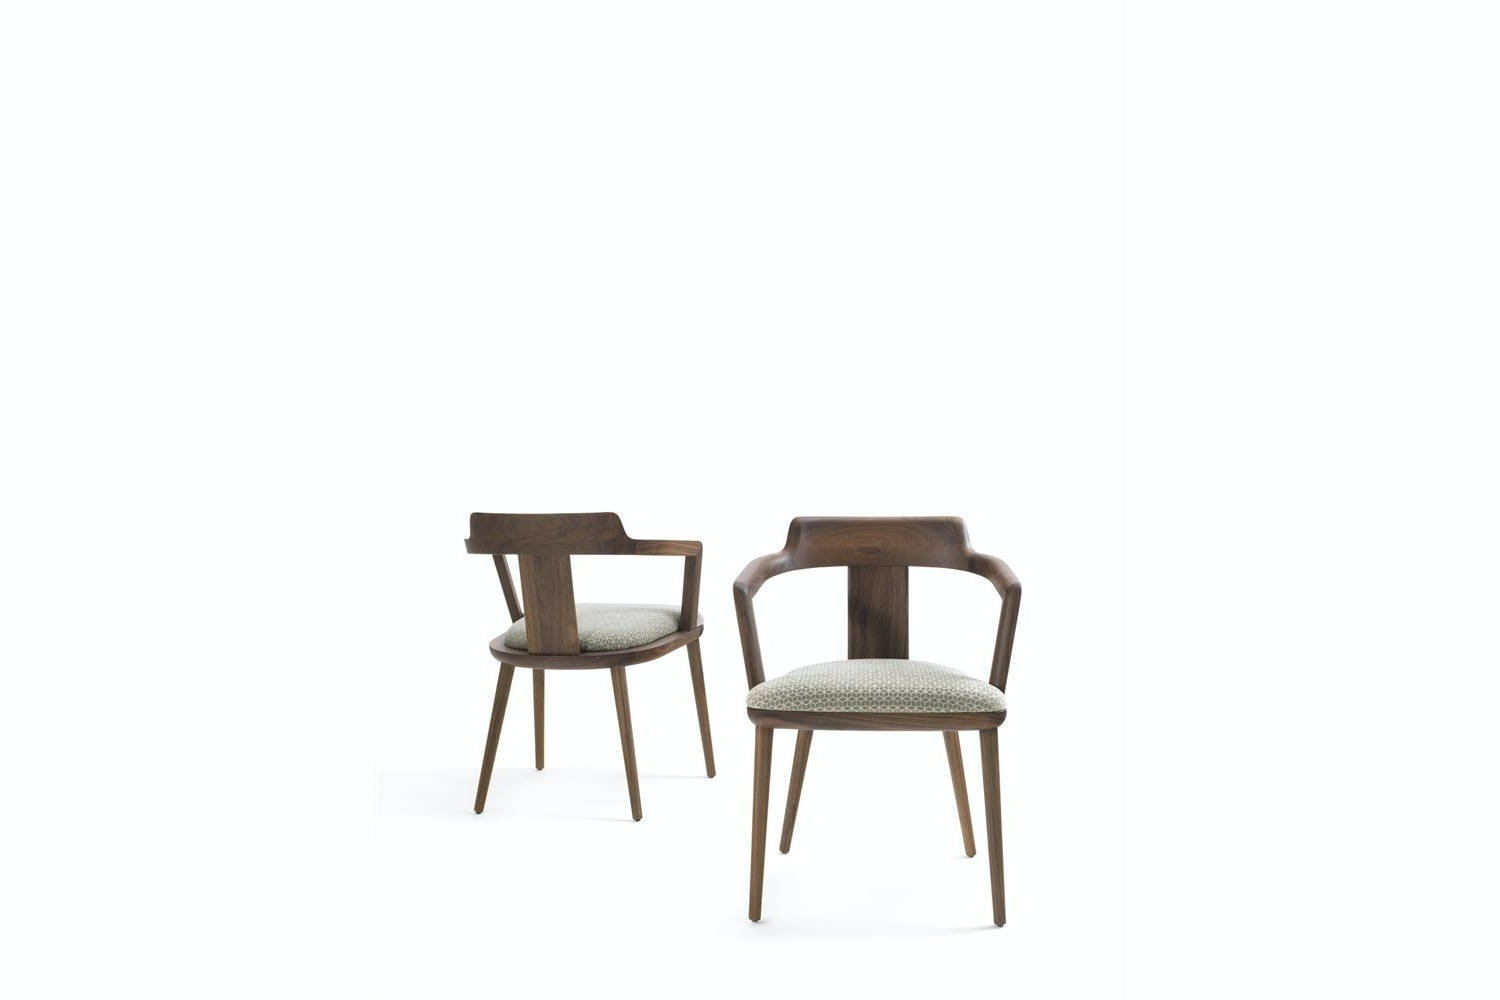 Tilly Chair by C. Ballabio for Porada